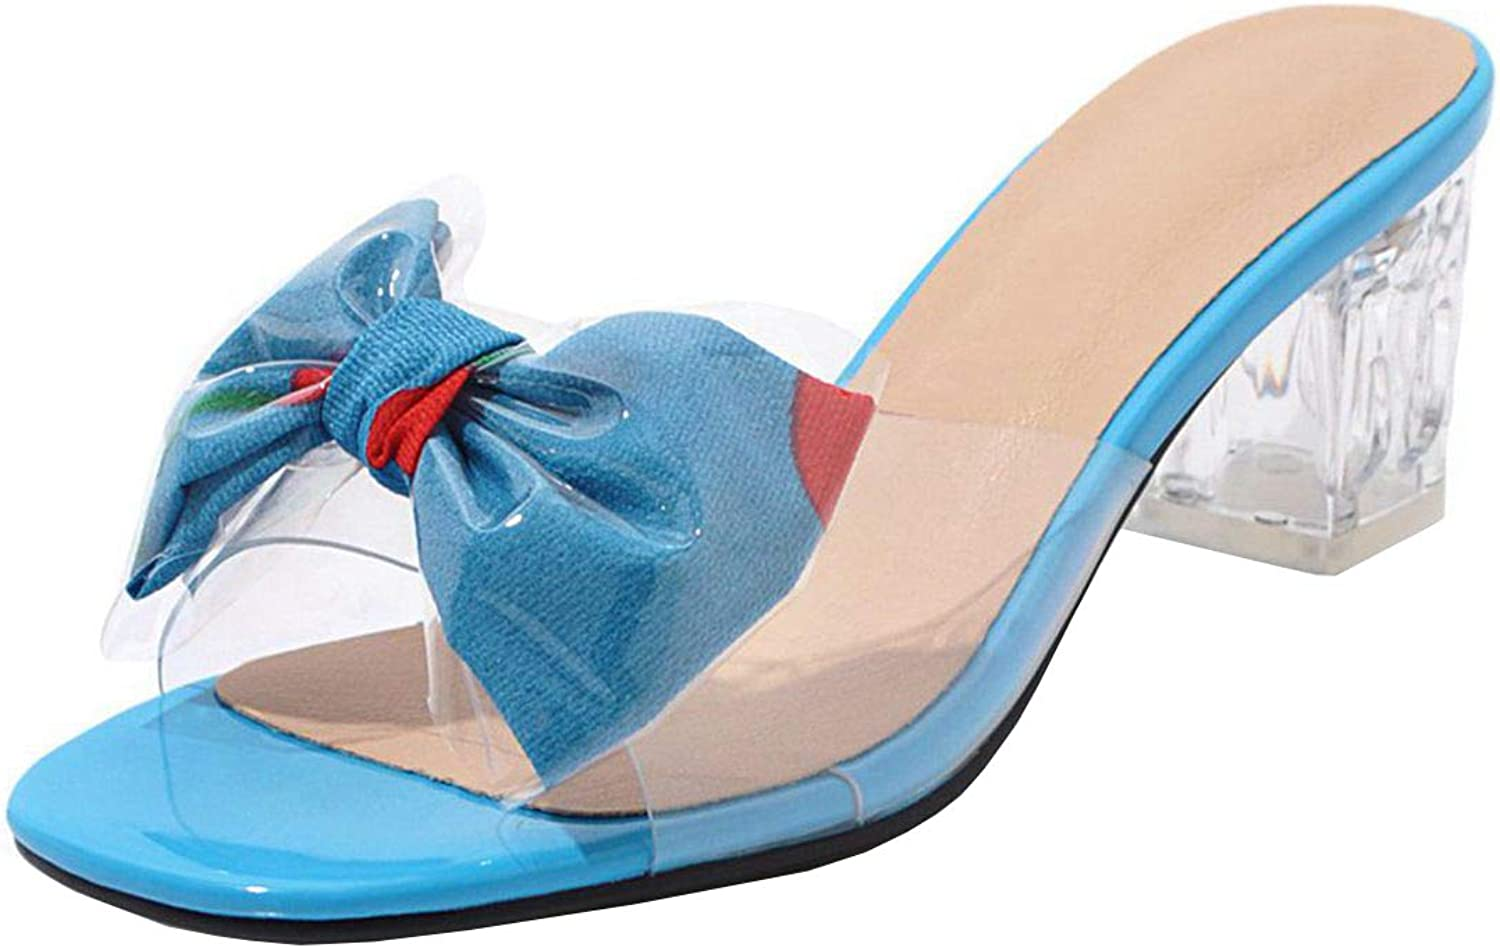 Vitalo Womens Block Heel Clear Mules Peep Toe Transparent Sandals with Bow